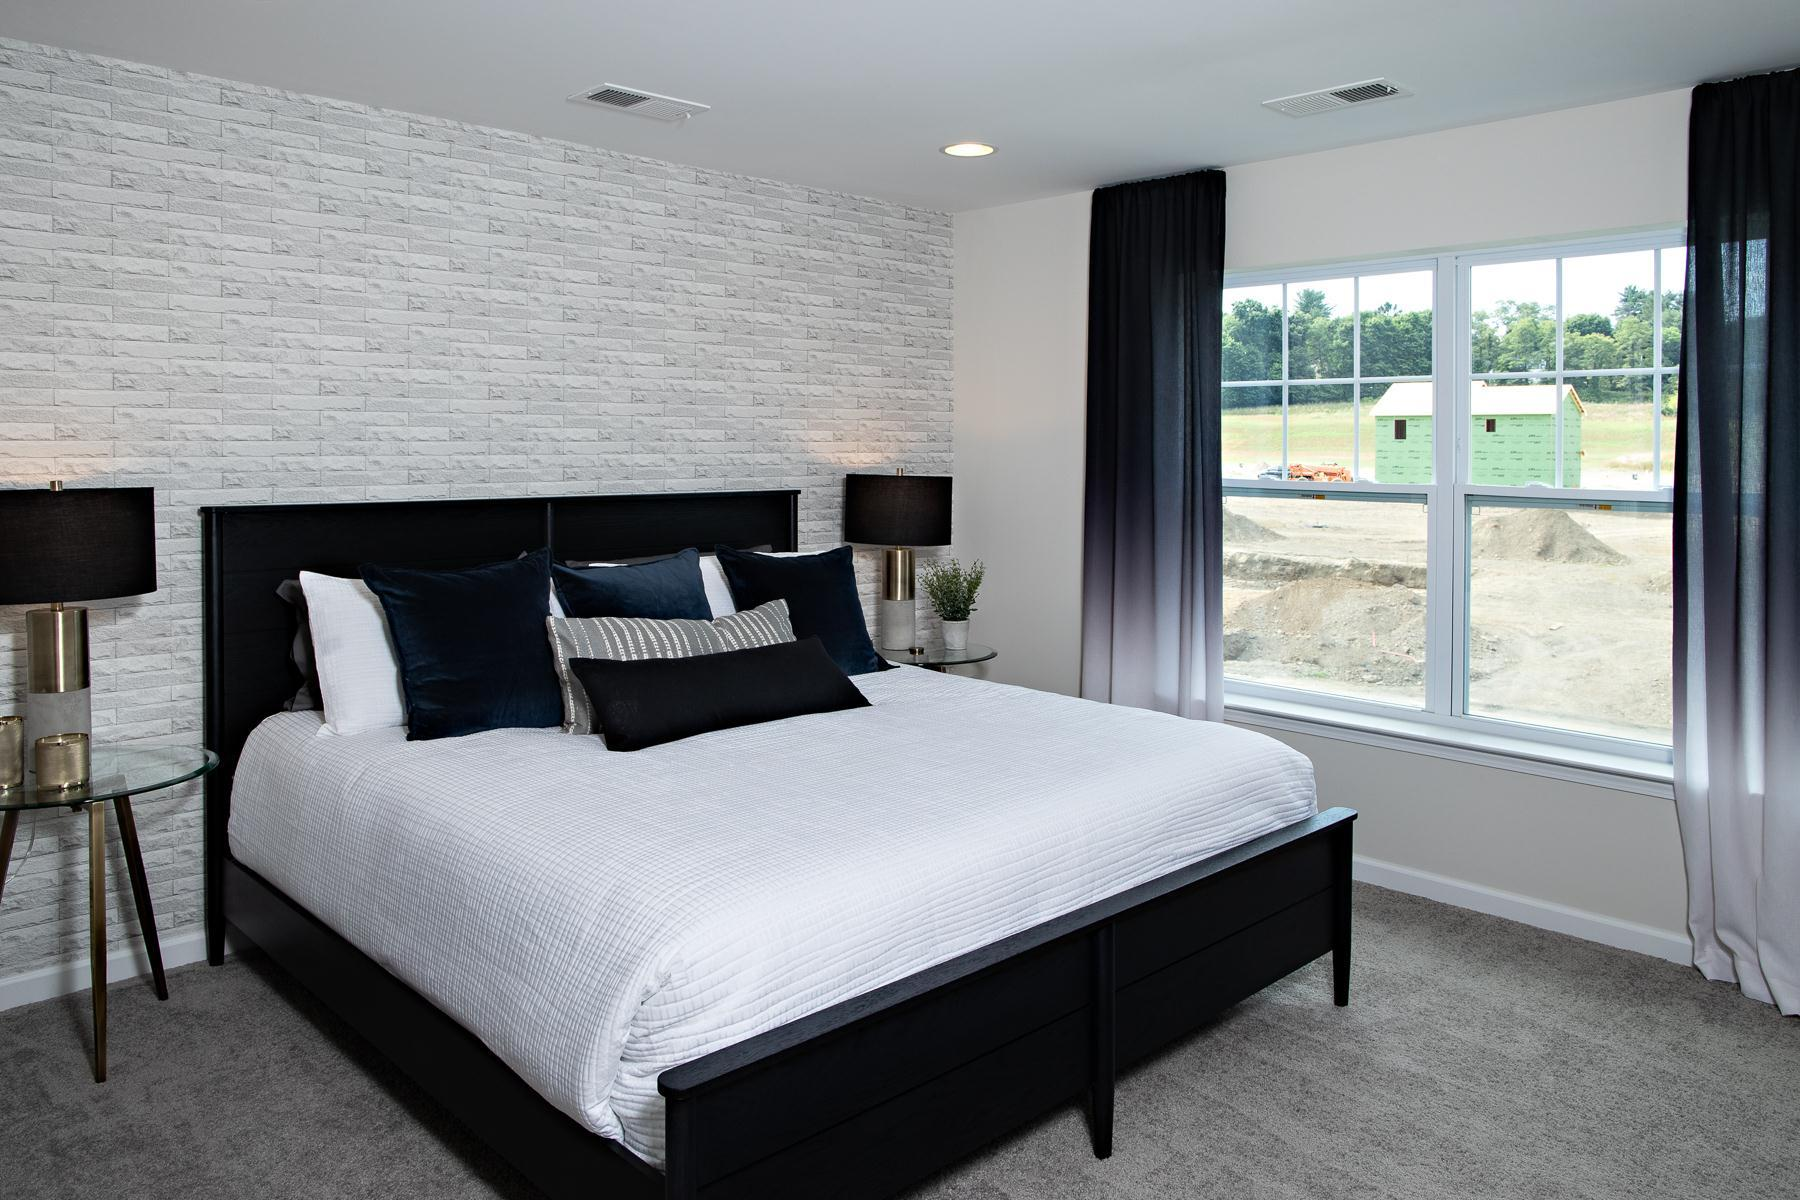 Bedroom featured in the Clark-The Glens By Sleight Farm at LaGrange in Dutchess County, NY